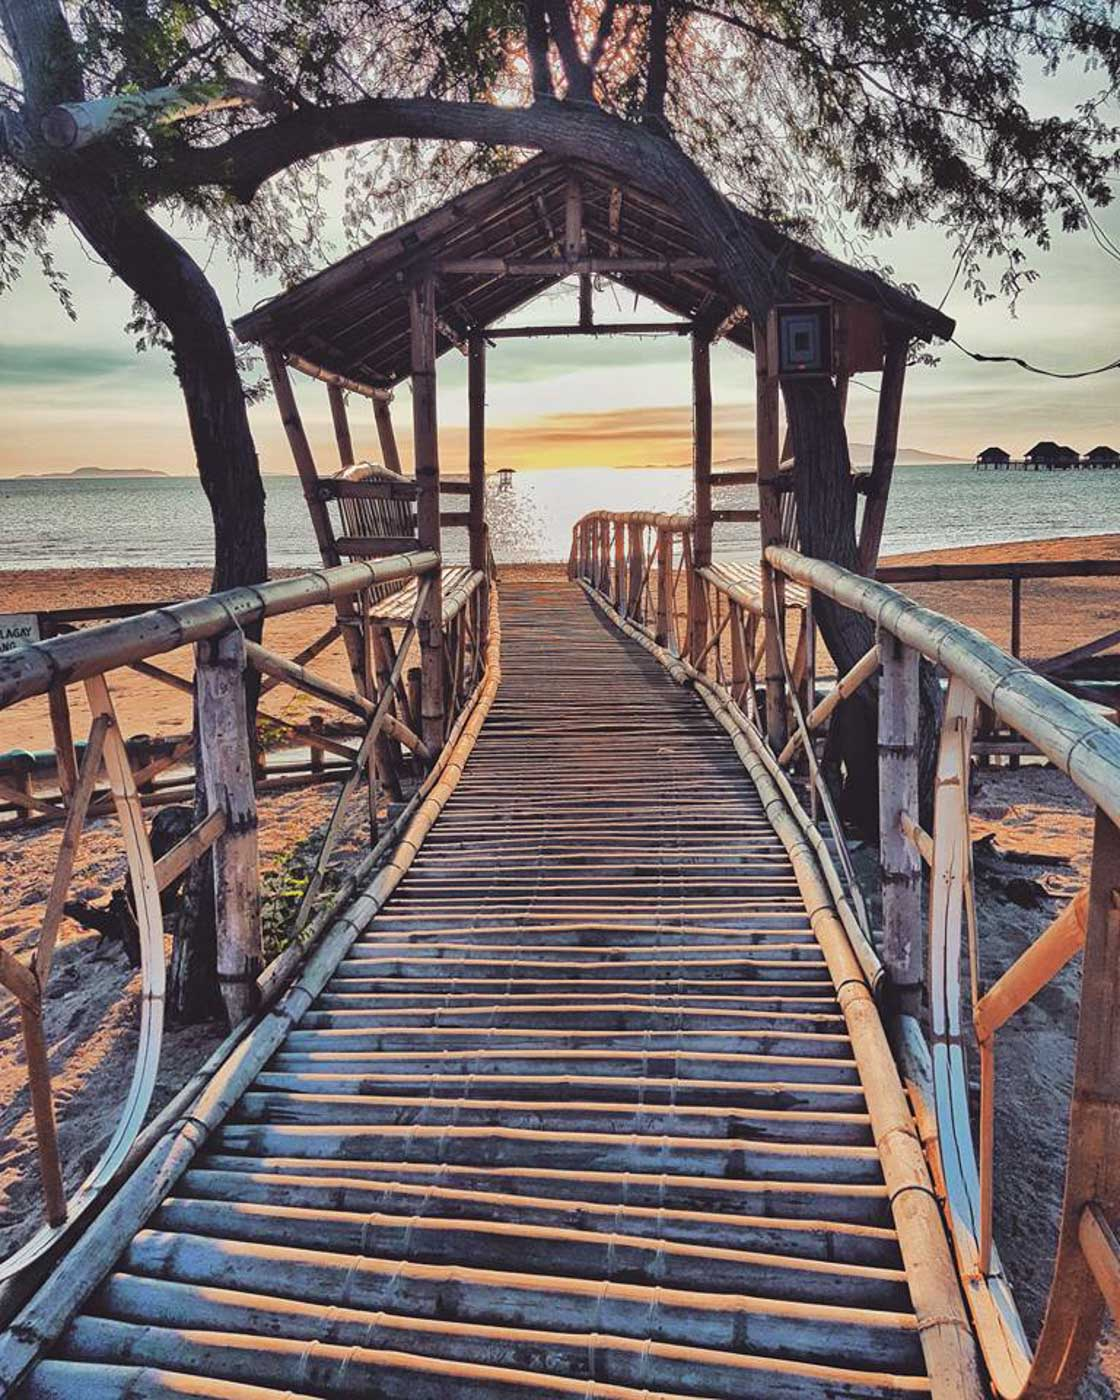 BAMBOO BRIDGE. At Manuel Uy Resort, there is a bamboo bridge and hut, the earlier good for crossing during high tide. Photo by Jay Vasquez